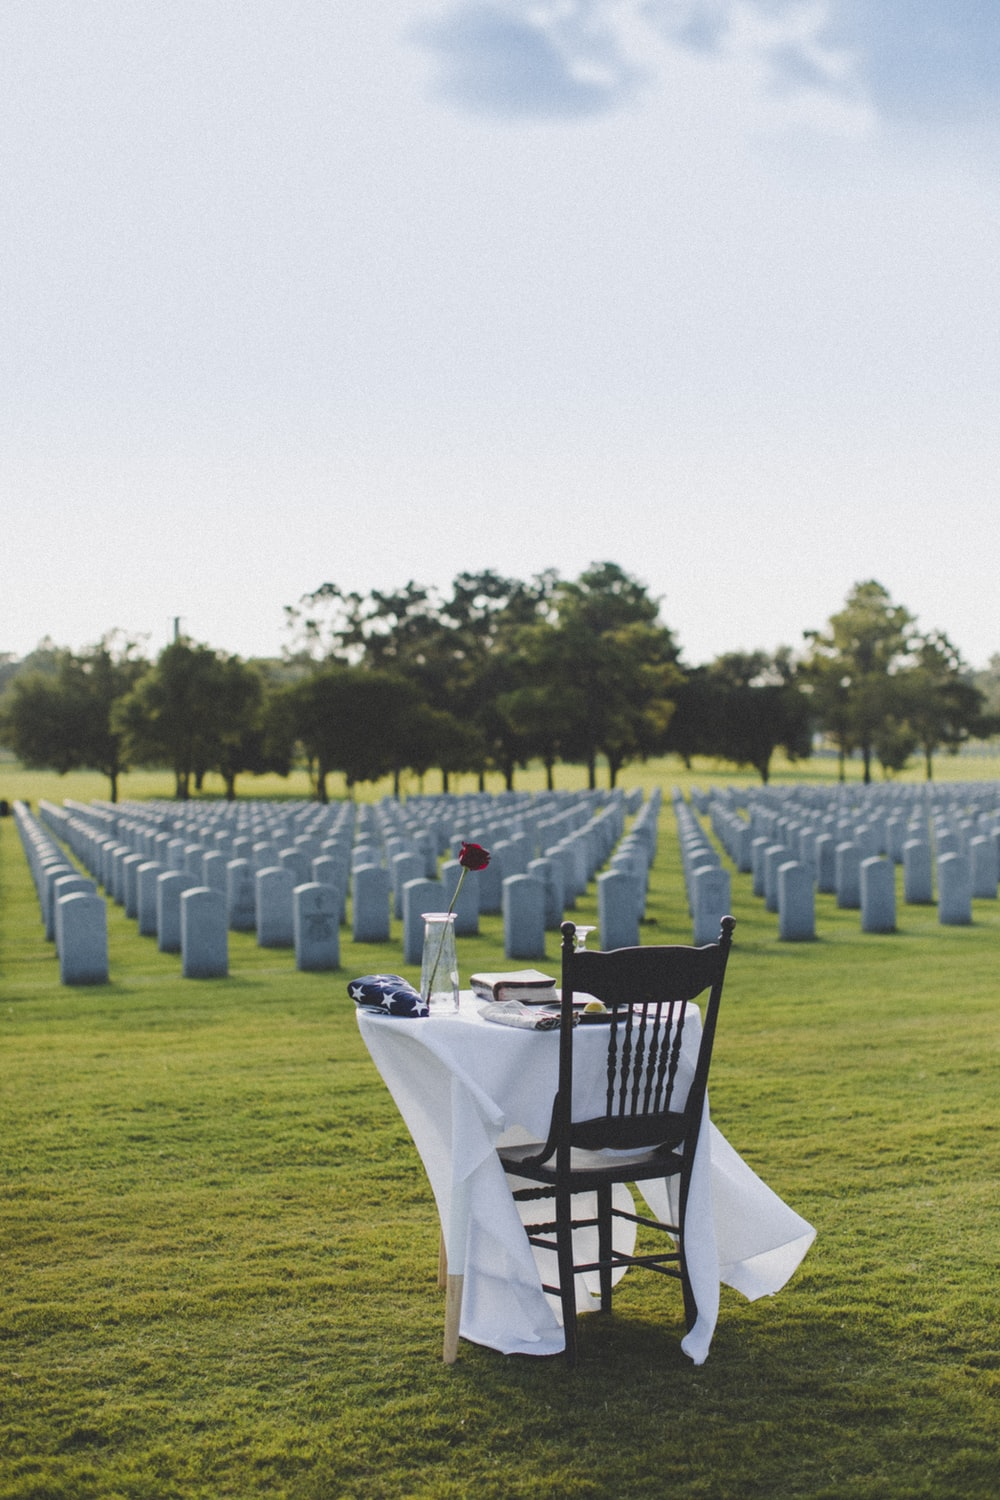 white table and chairs on green grass field during daytime